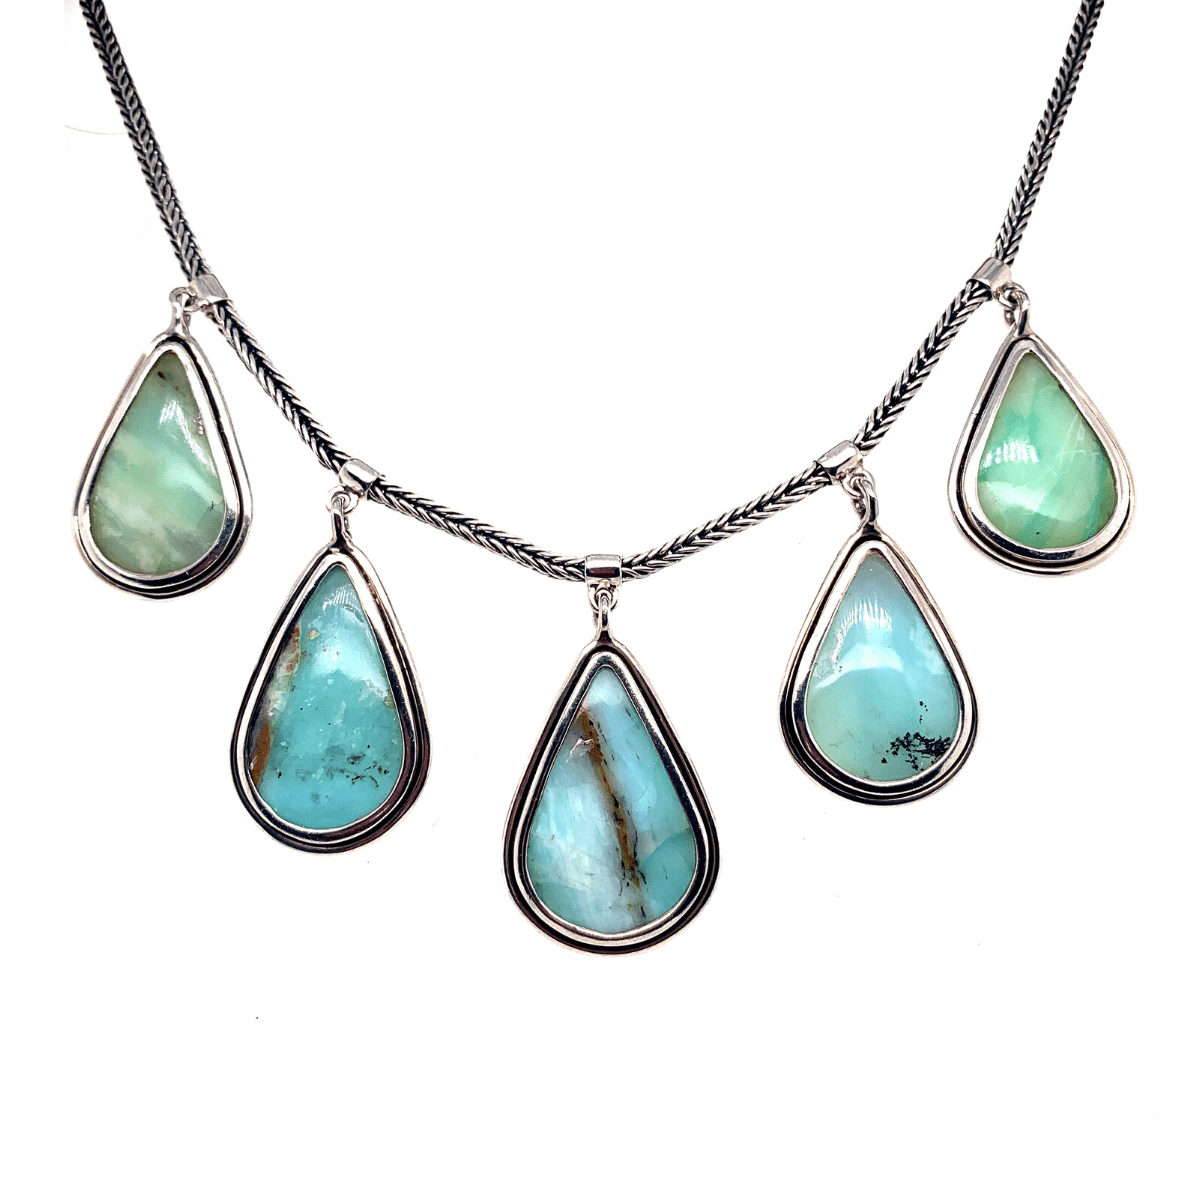 Andean Opal Teardrops & Sterling Silver Necklace - Qinti - The Peruvian Shop